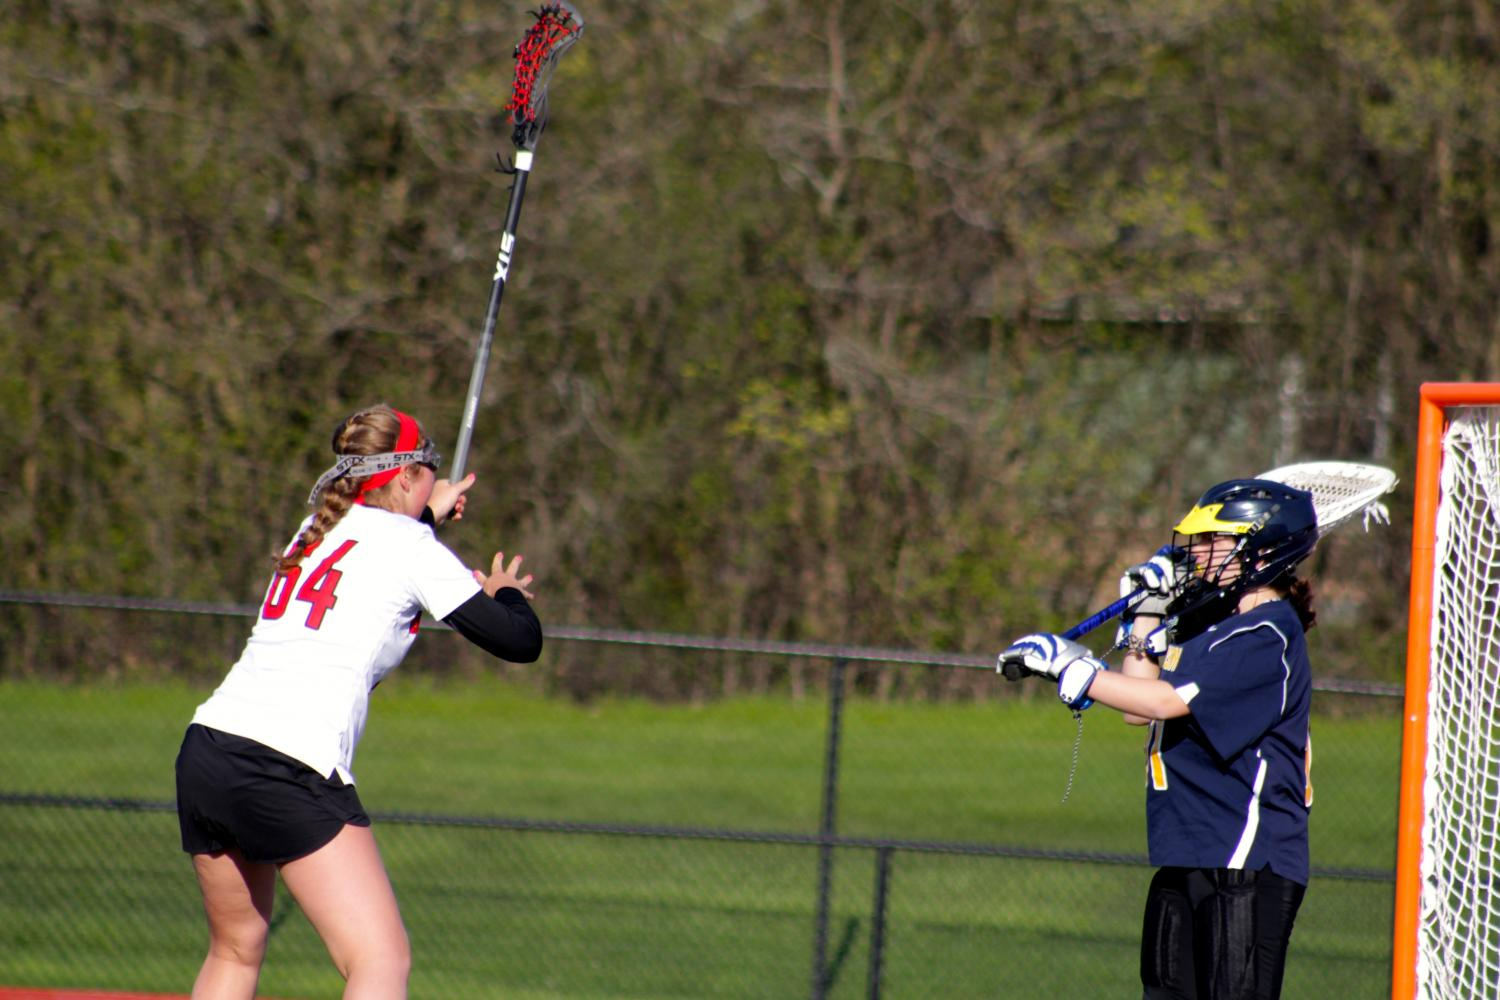 Amy Erpenbeck, freshman, blocks the goalie.